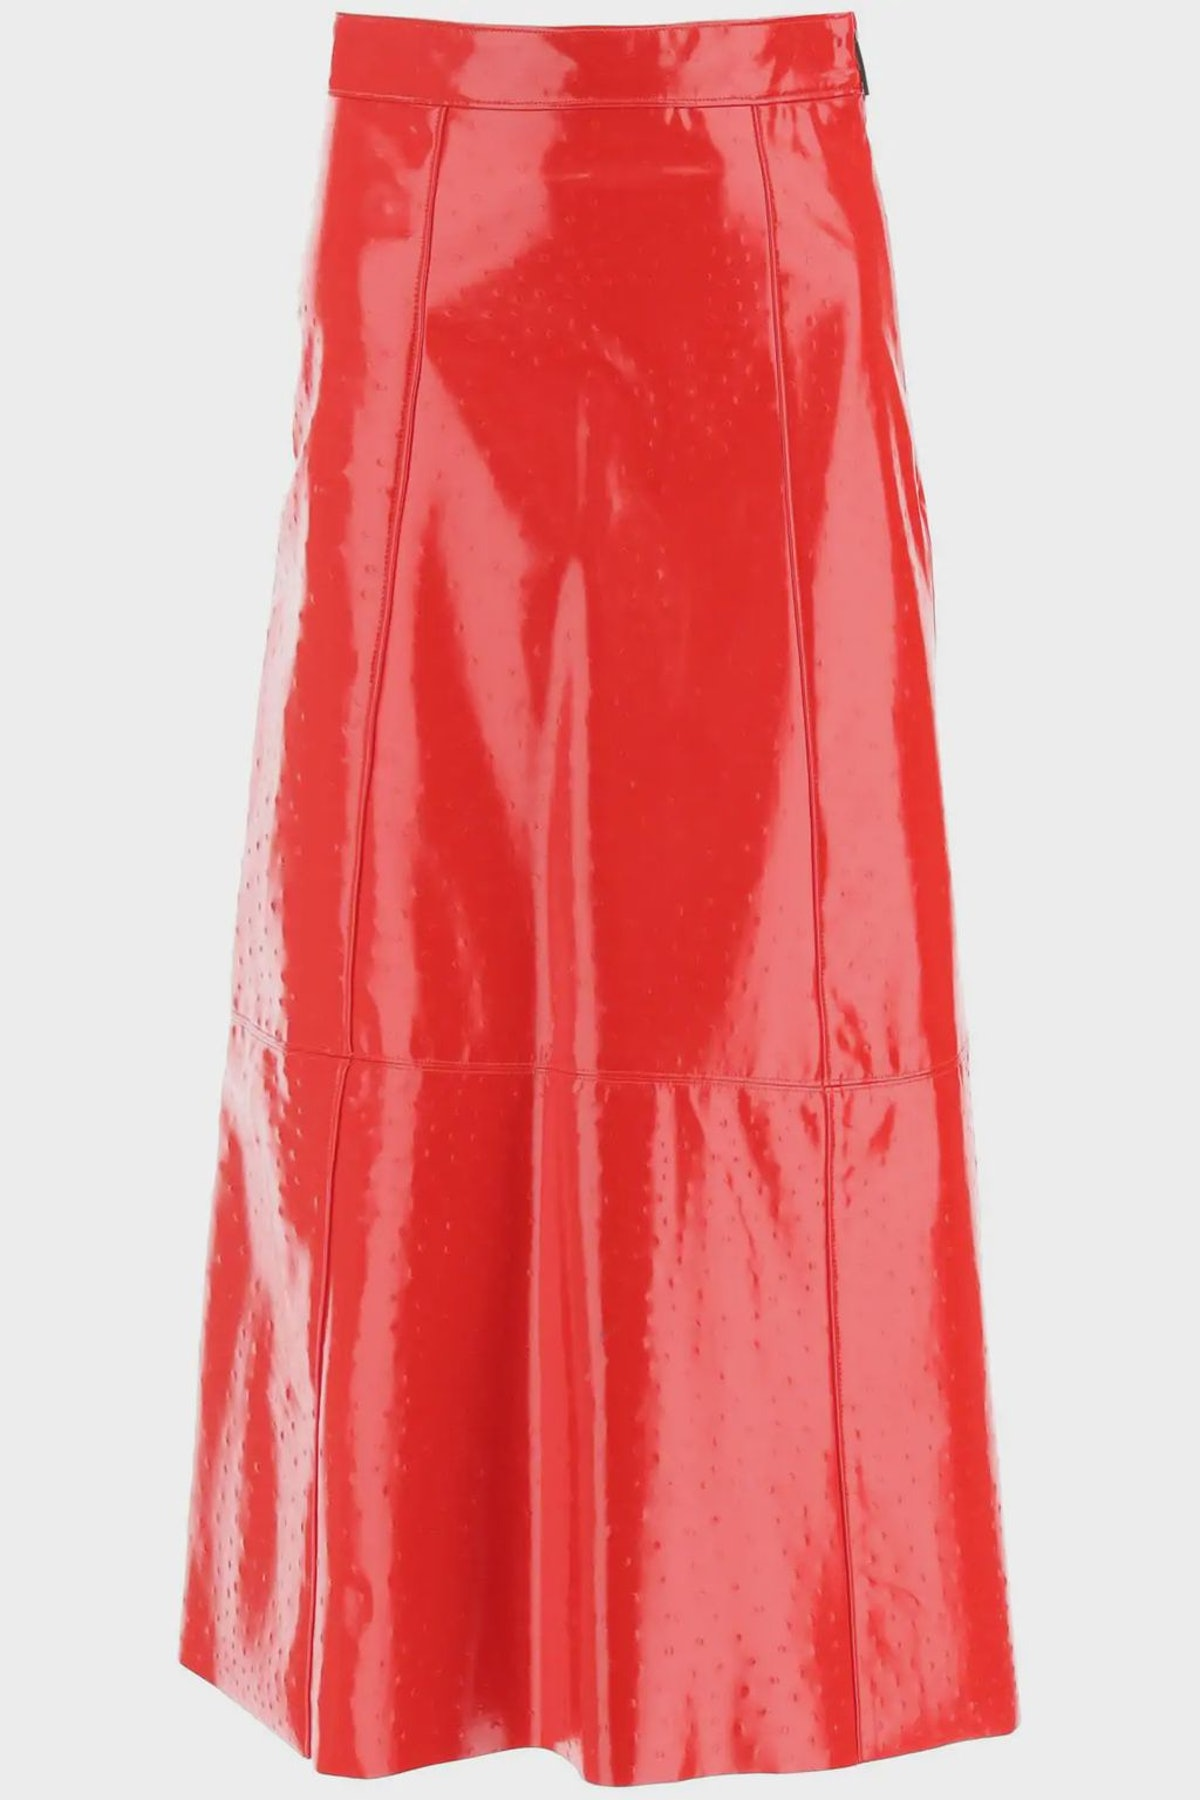 Msgm Ostrich-effect Faux Leather Midi Skirt: image 1